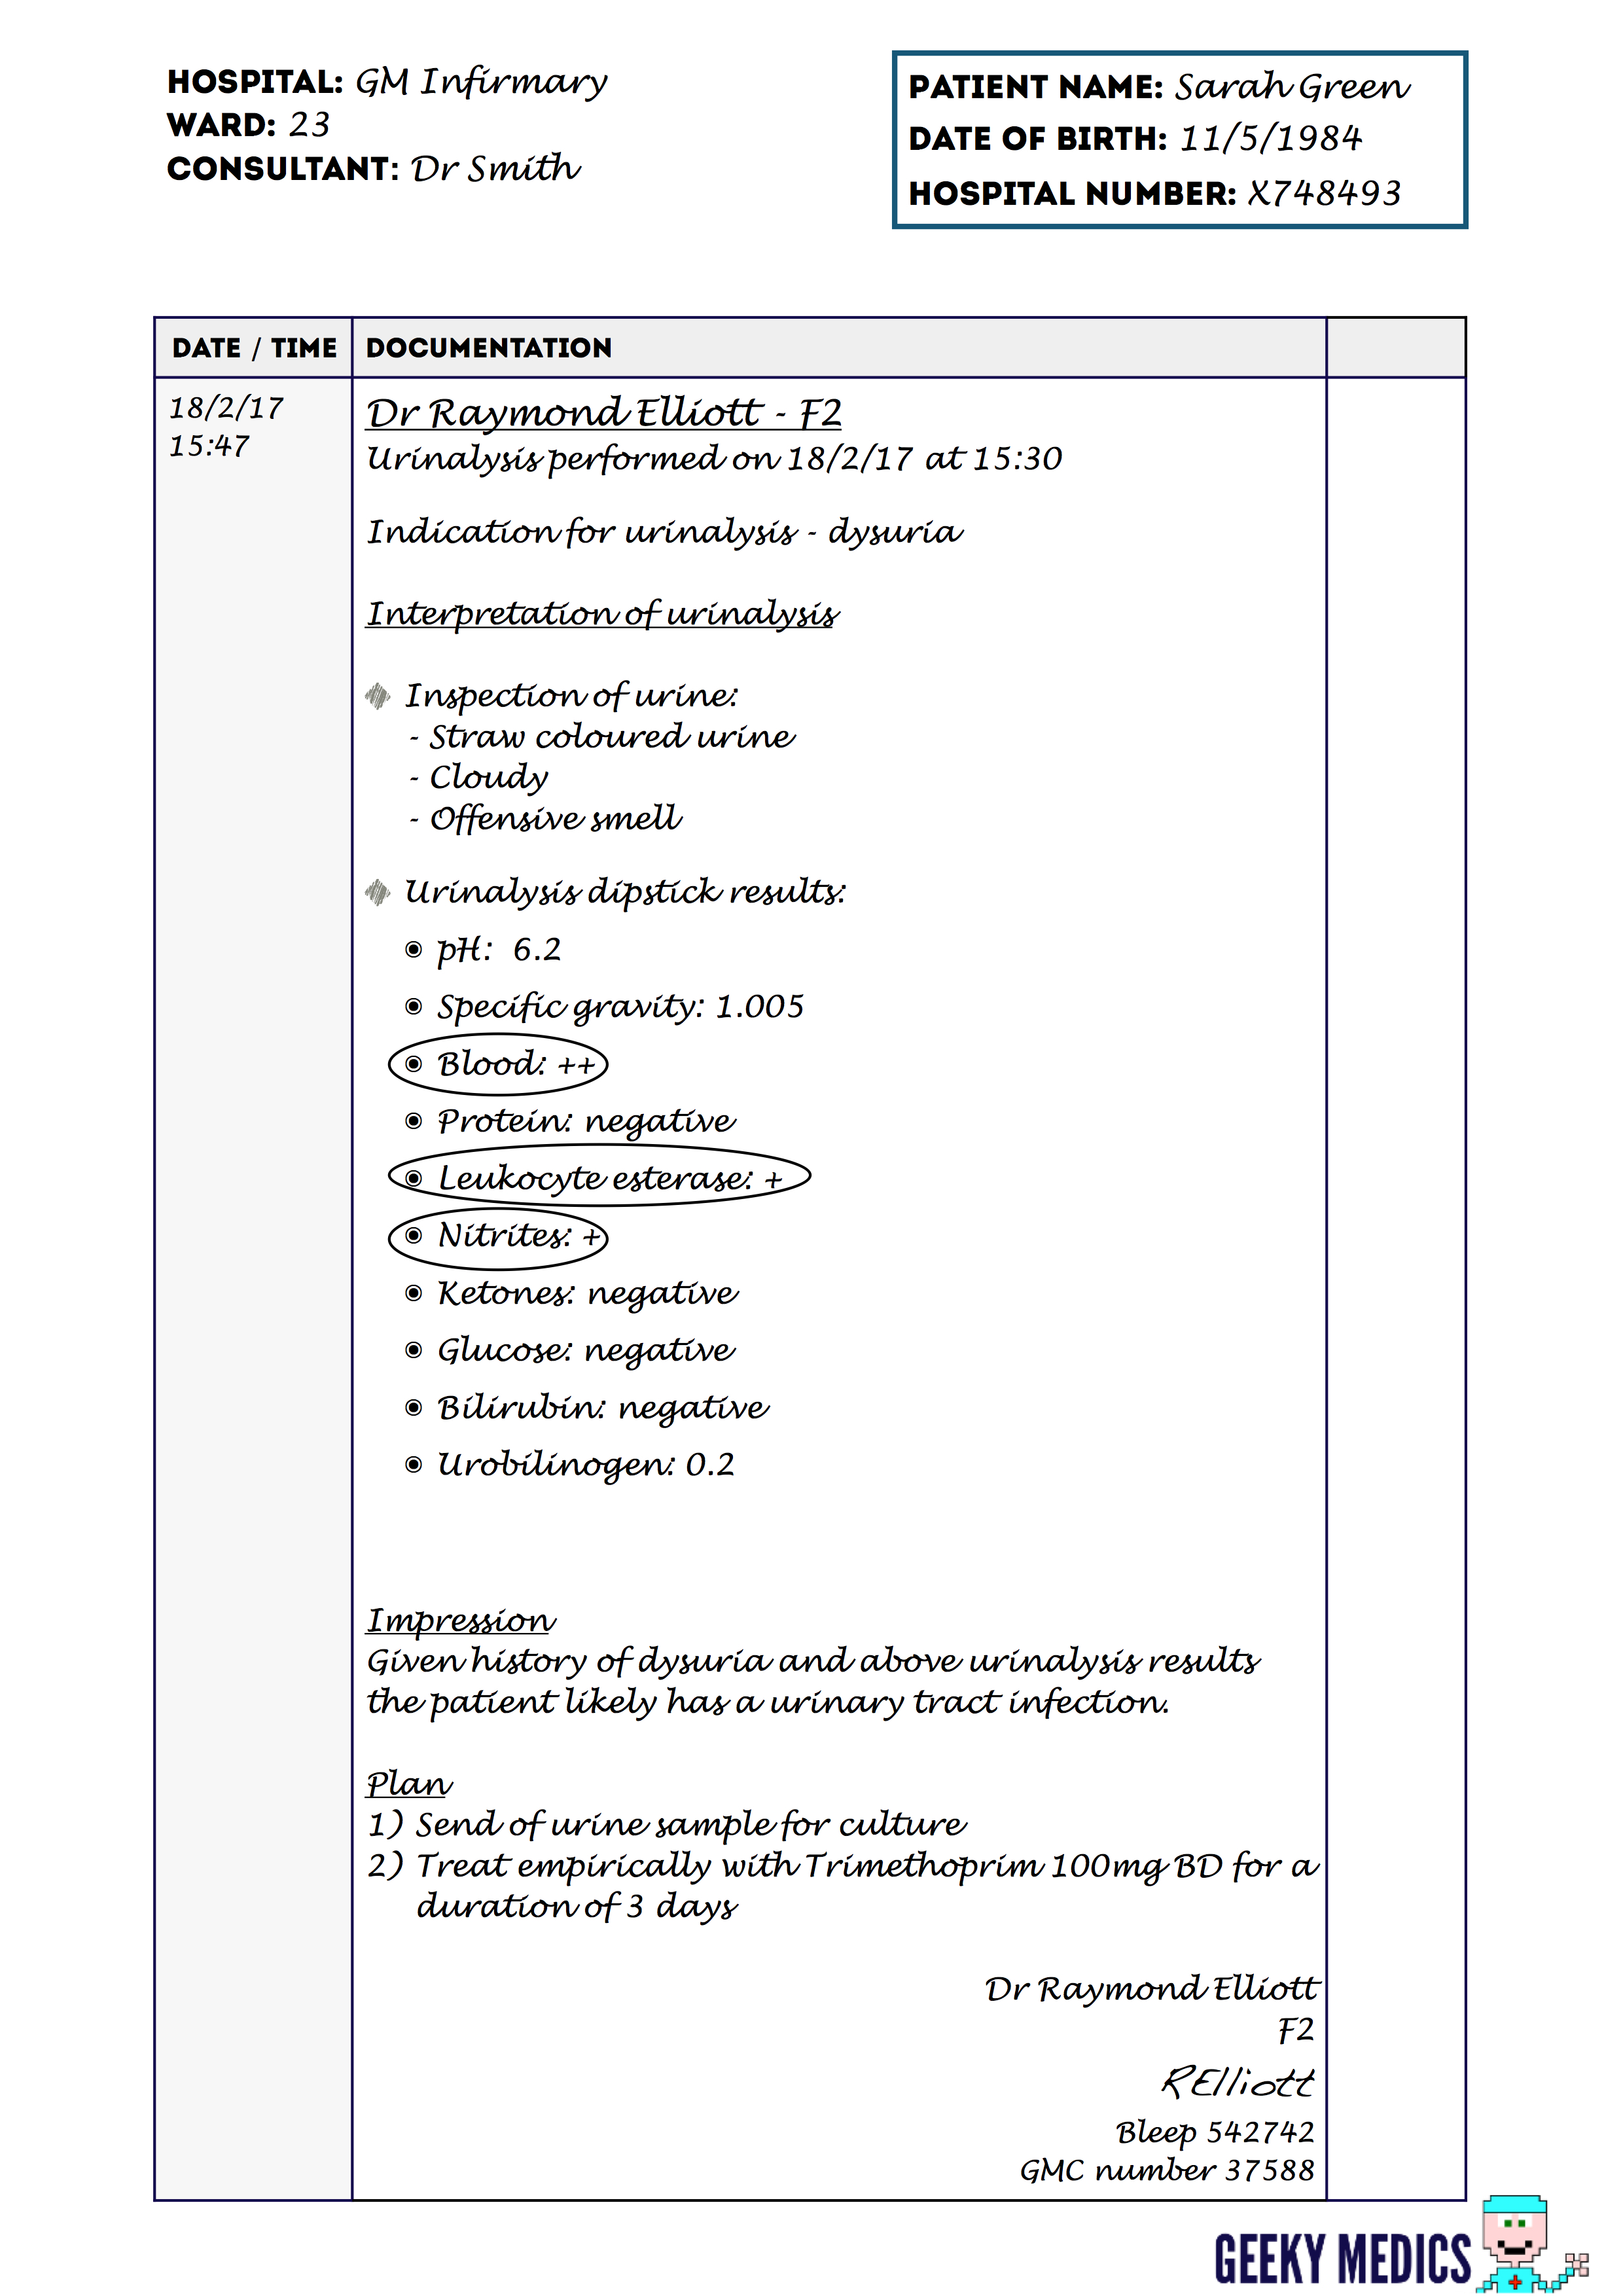 How to Document Urinalysis Results in the Notes | Geeky Medics